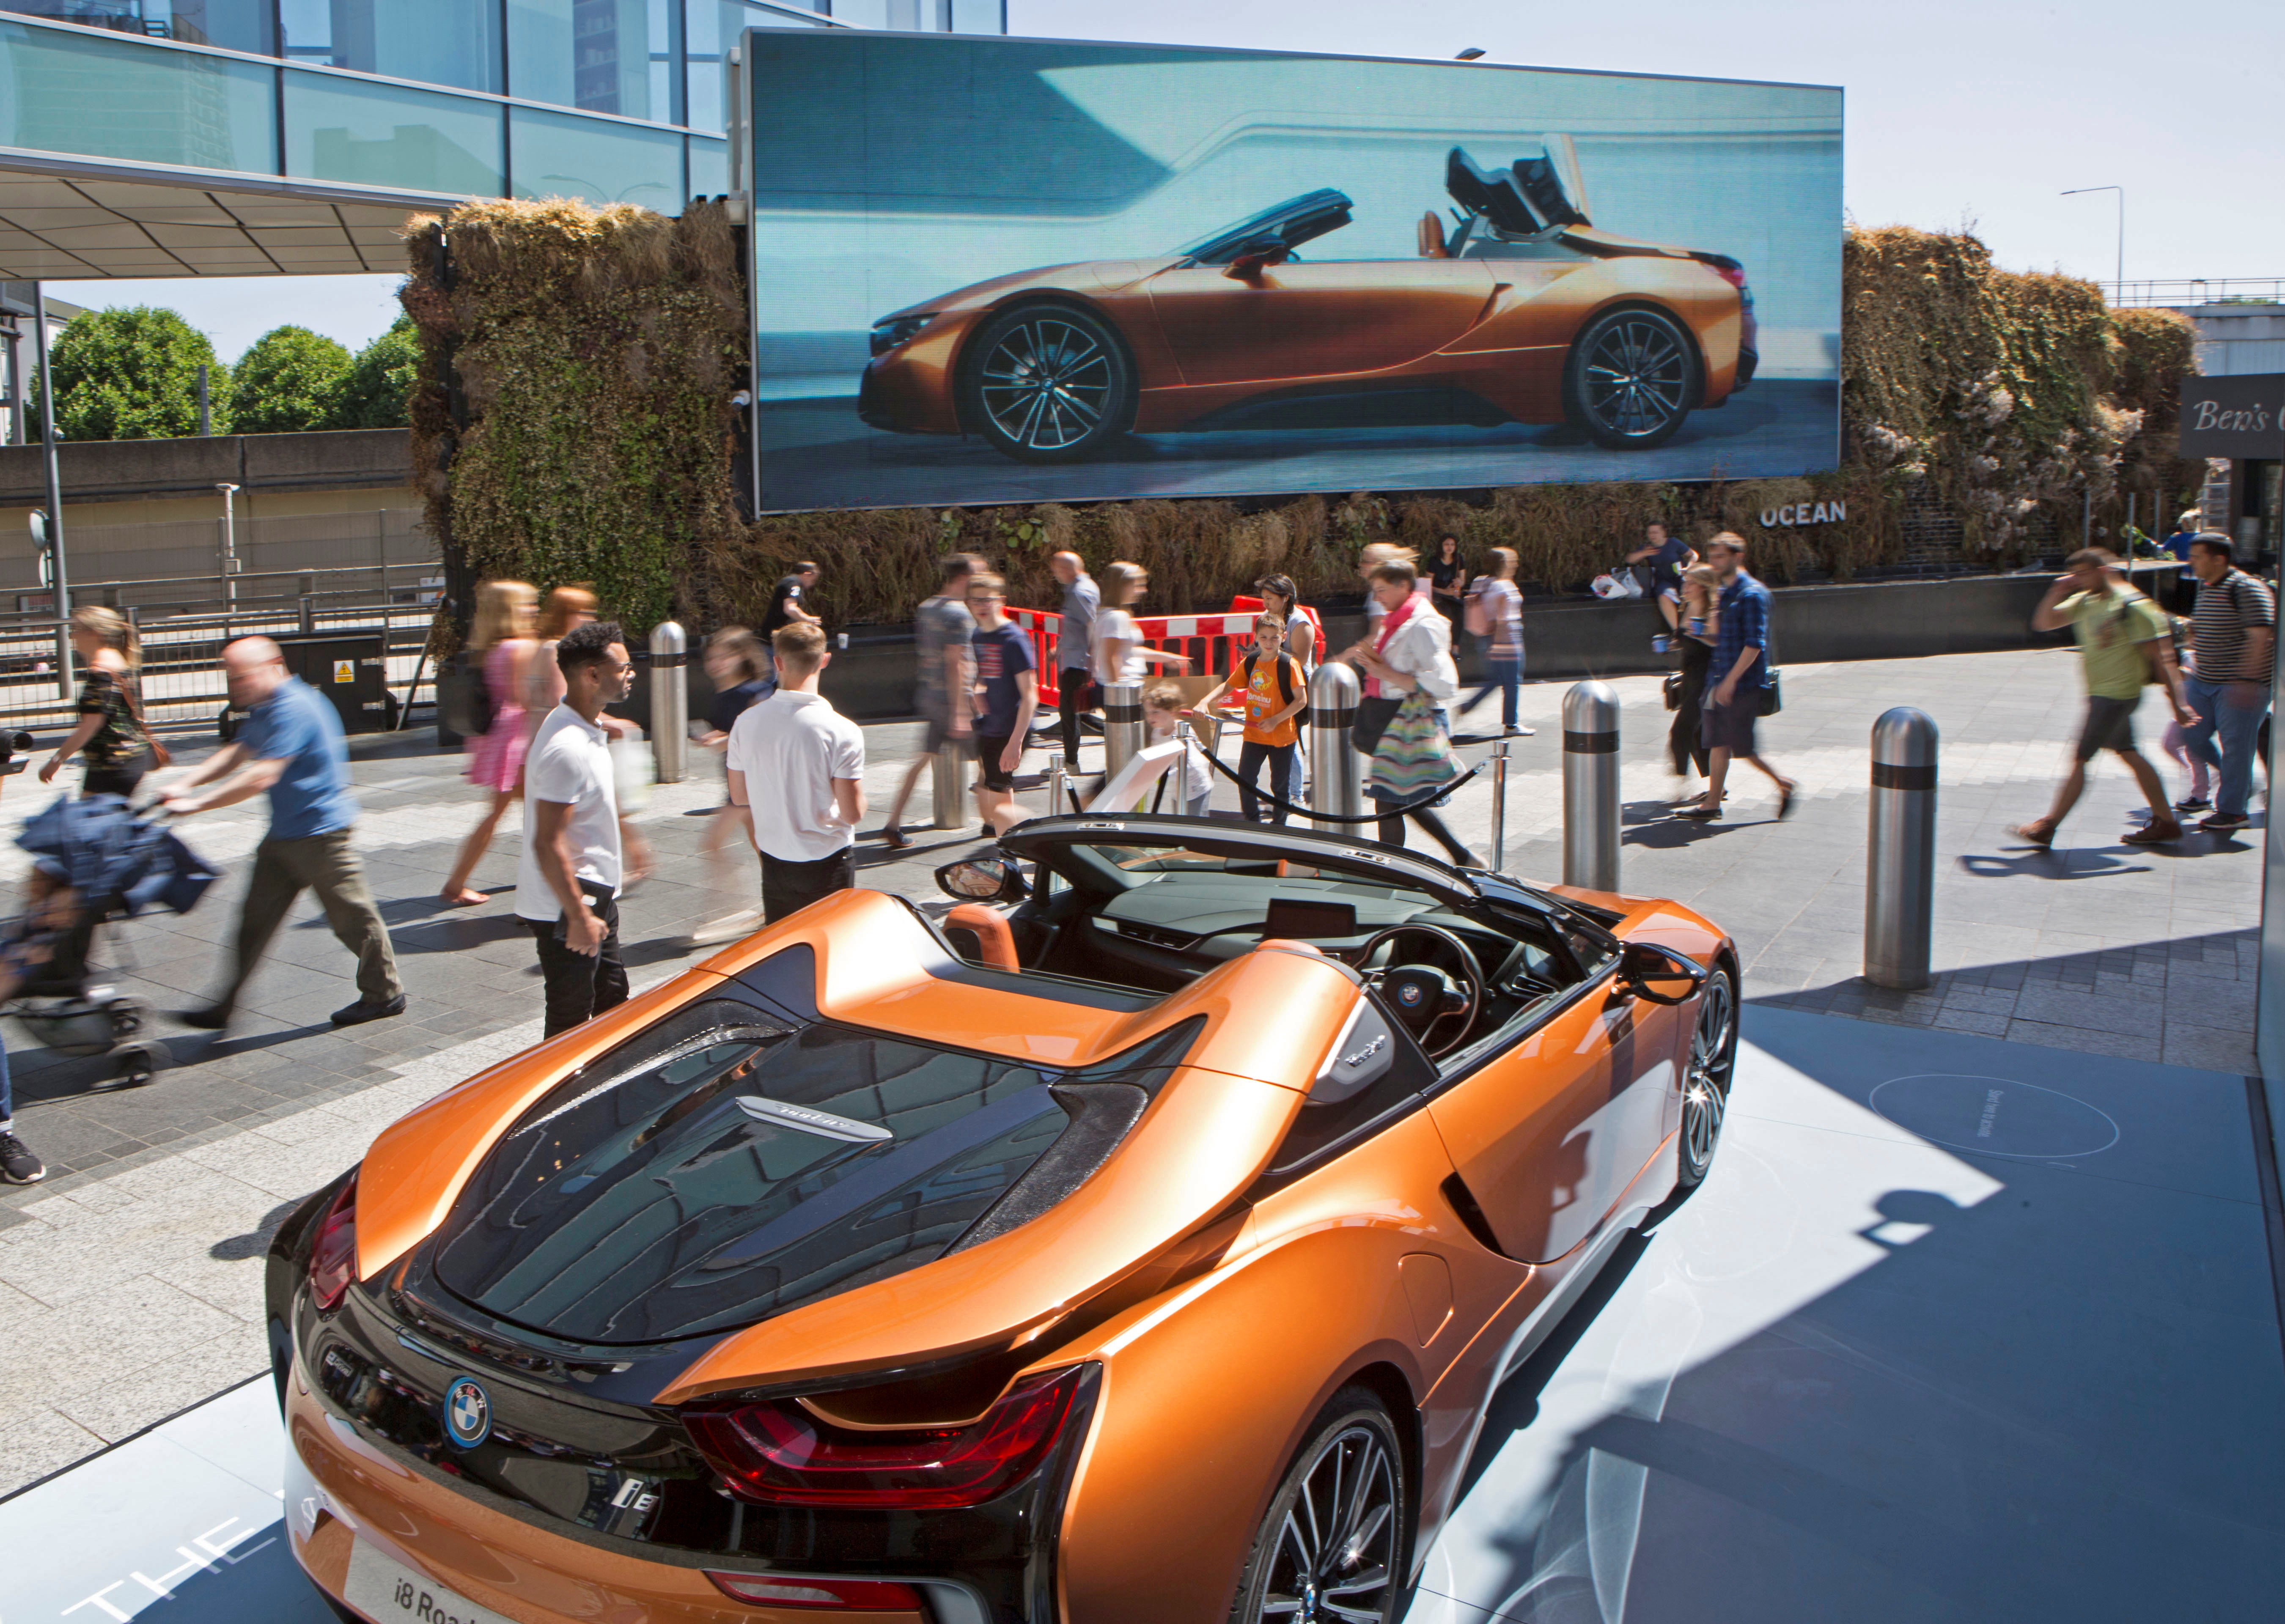 BMW Celebrates Its Eco-Friendly Showstopping Supercar with Outdoor Activation